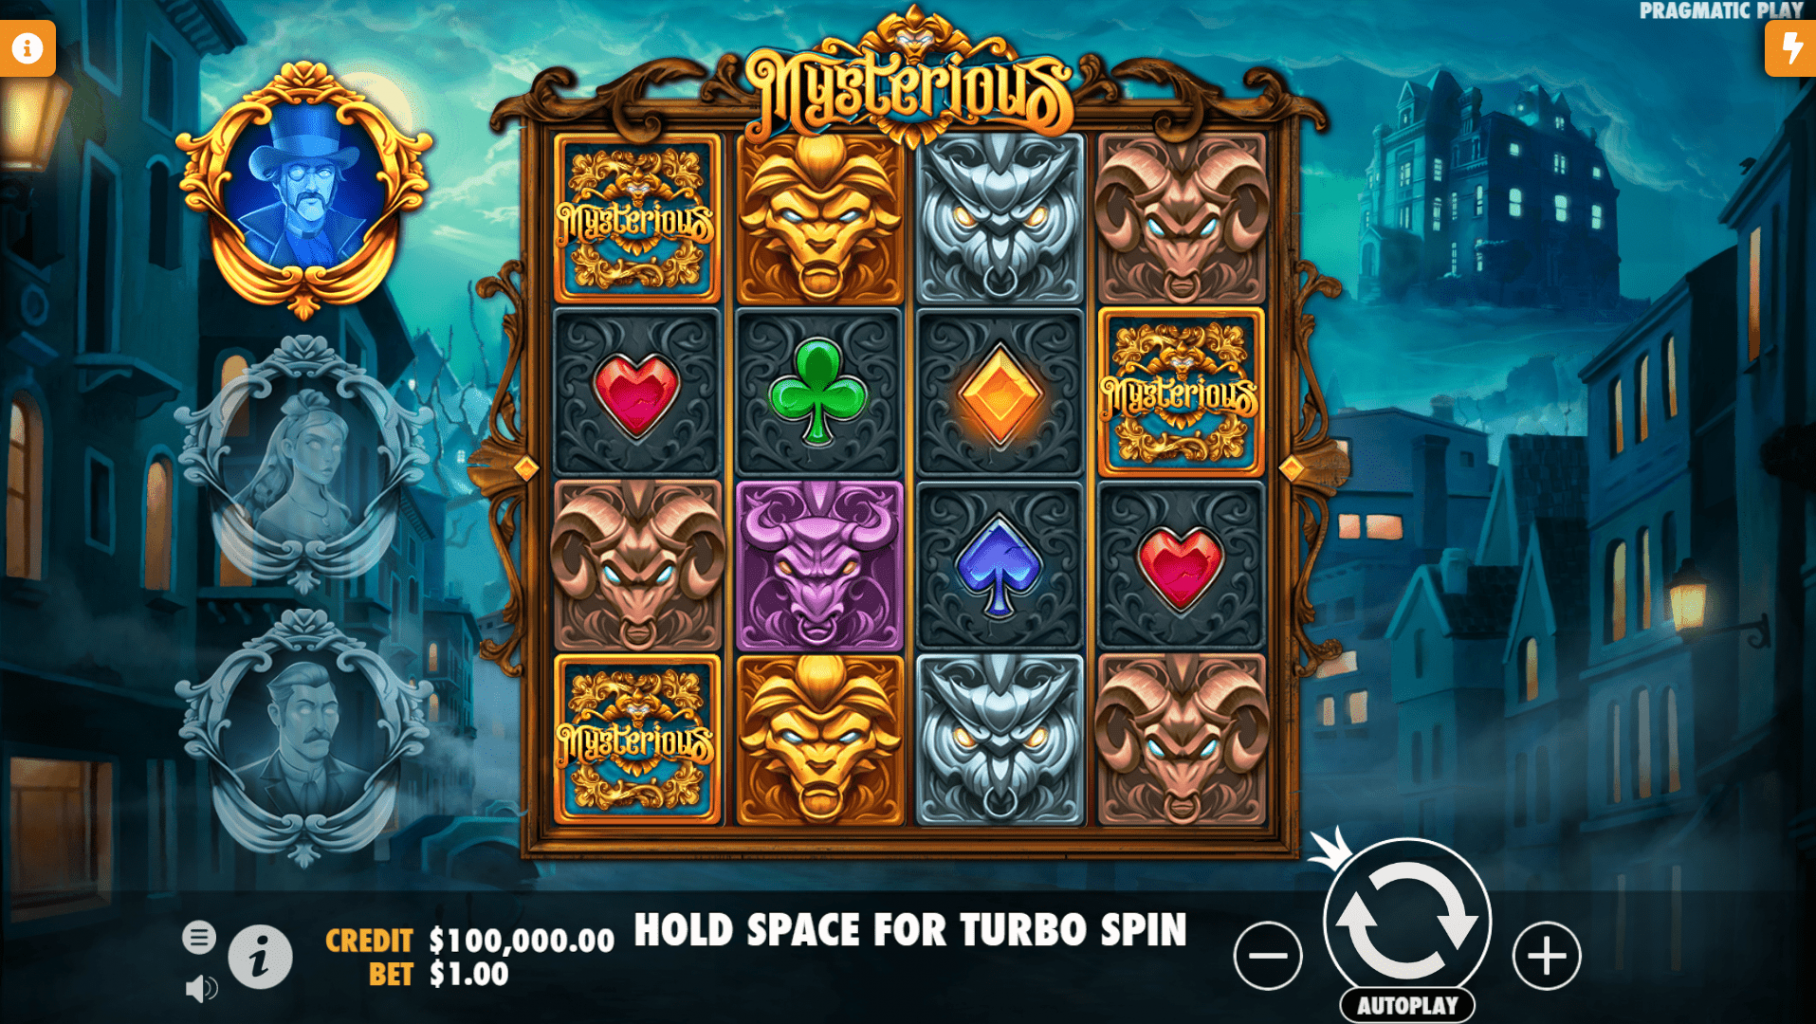 Mysterious slot base game